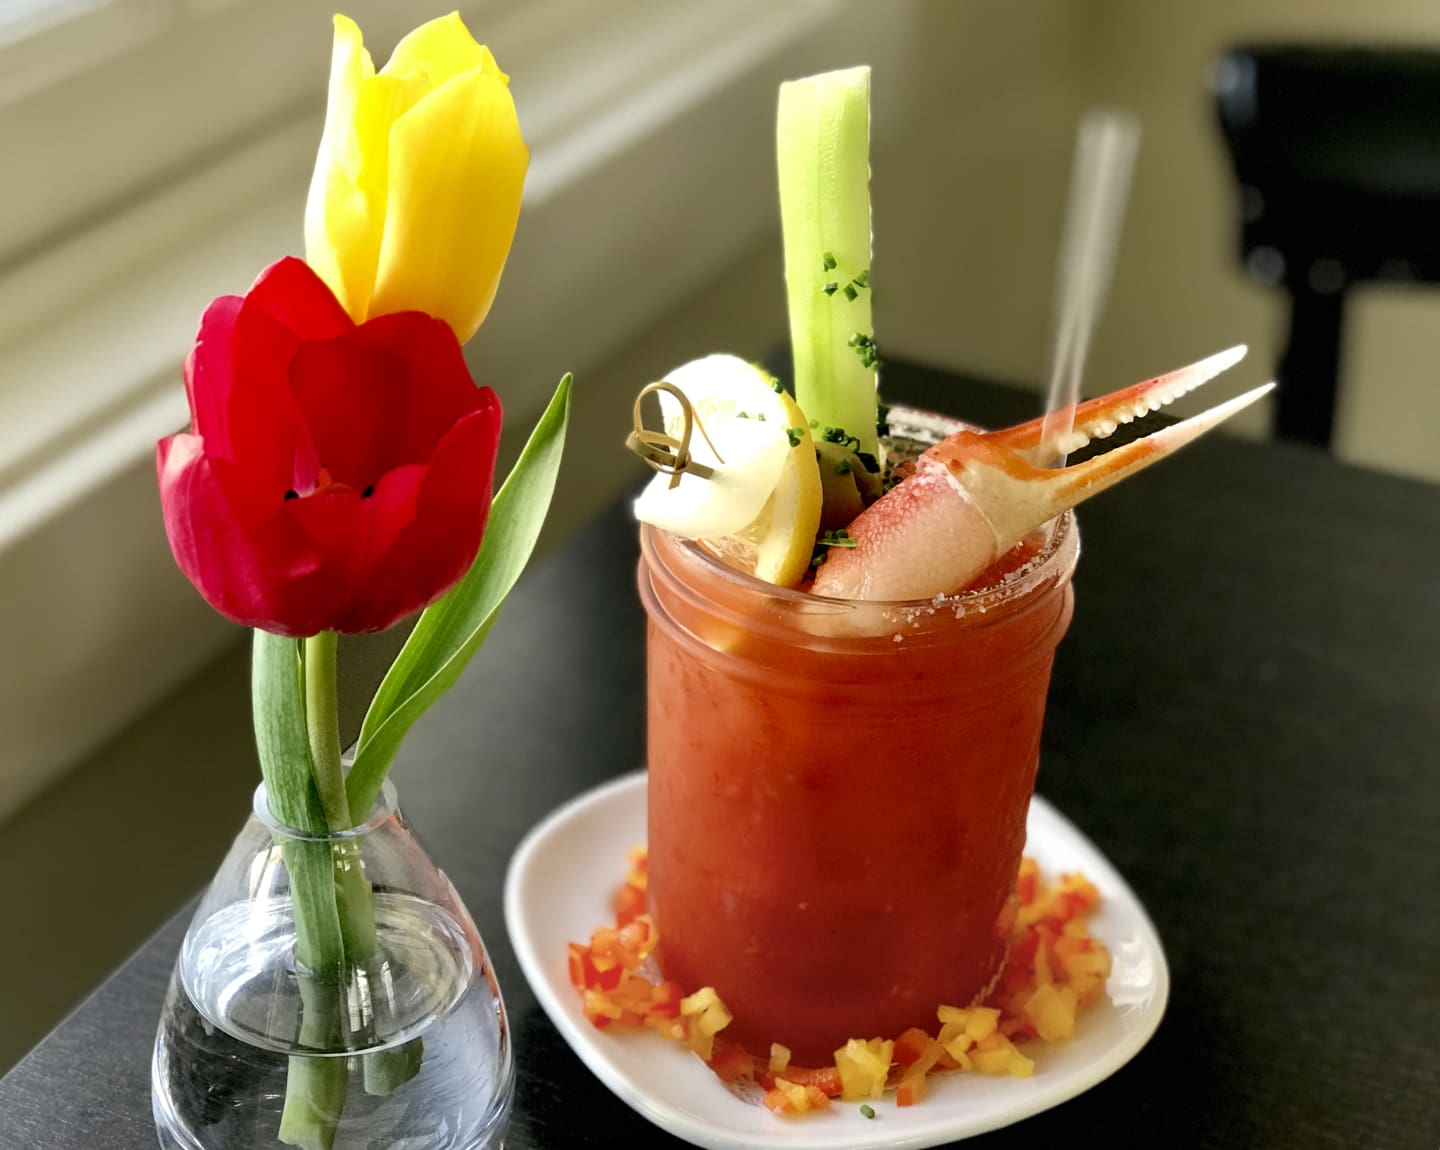 Smoked Chipotle, Crab & Cucumber Bloody Mary